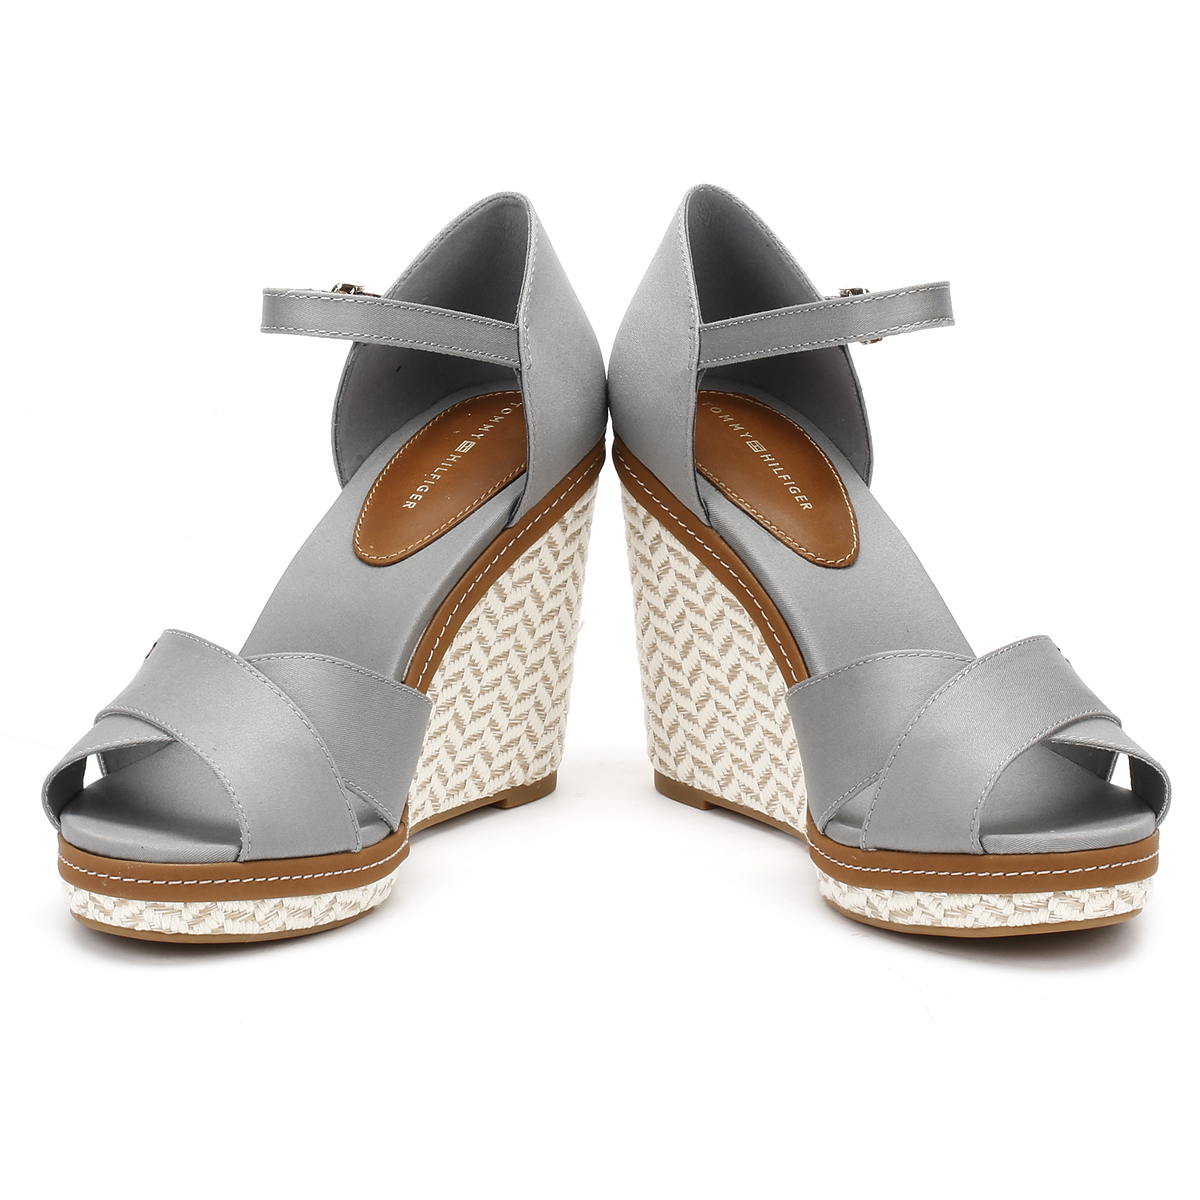 Buy second-hand OFFICE LONDON shoes for Women on Vestiaire Collective. Buy, sell, empty your wardrobe on our website.